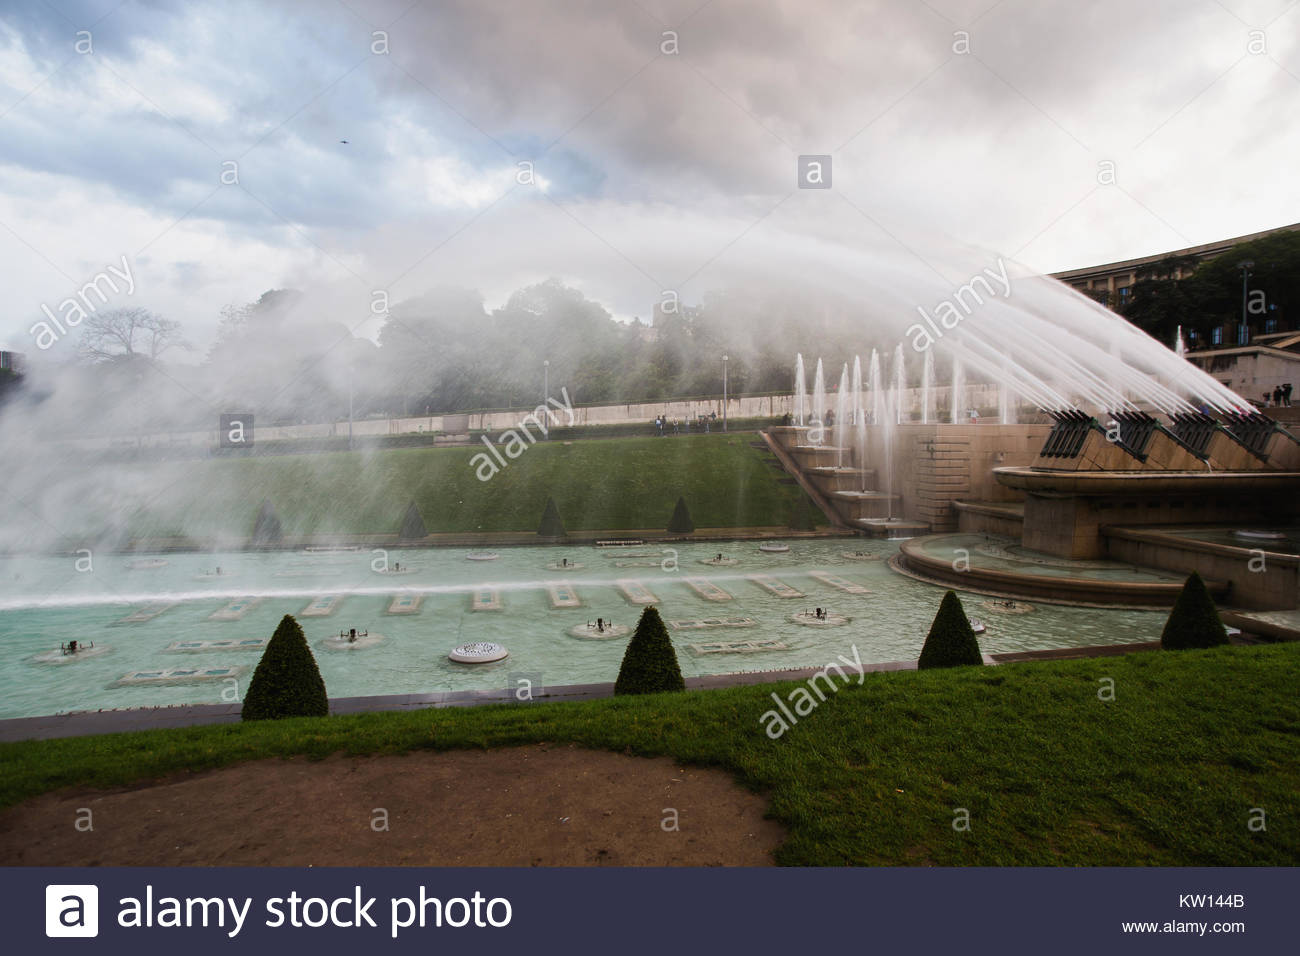 Fountains in Paris at the Trocadero square near the Palace of Chaillot. Travel through Europe. Attractions in France. - Stock Image